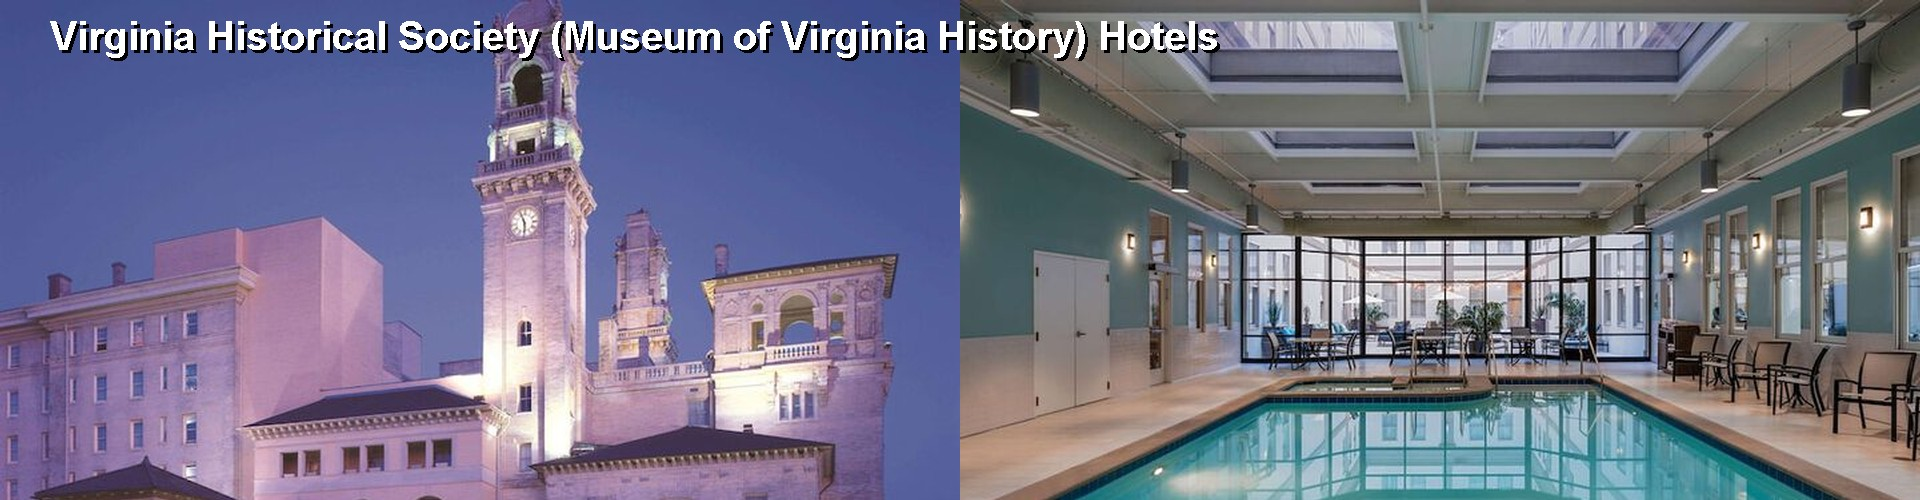 5 Best Hotels near Virginia Historical Society (Museum of Virginia History)